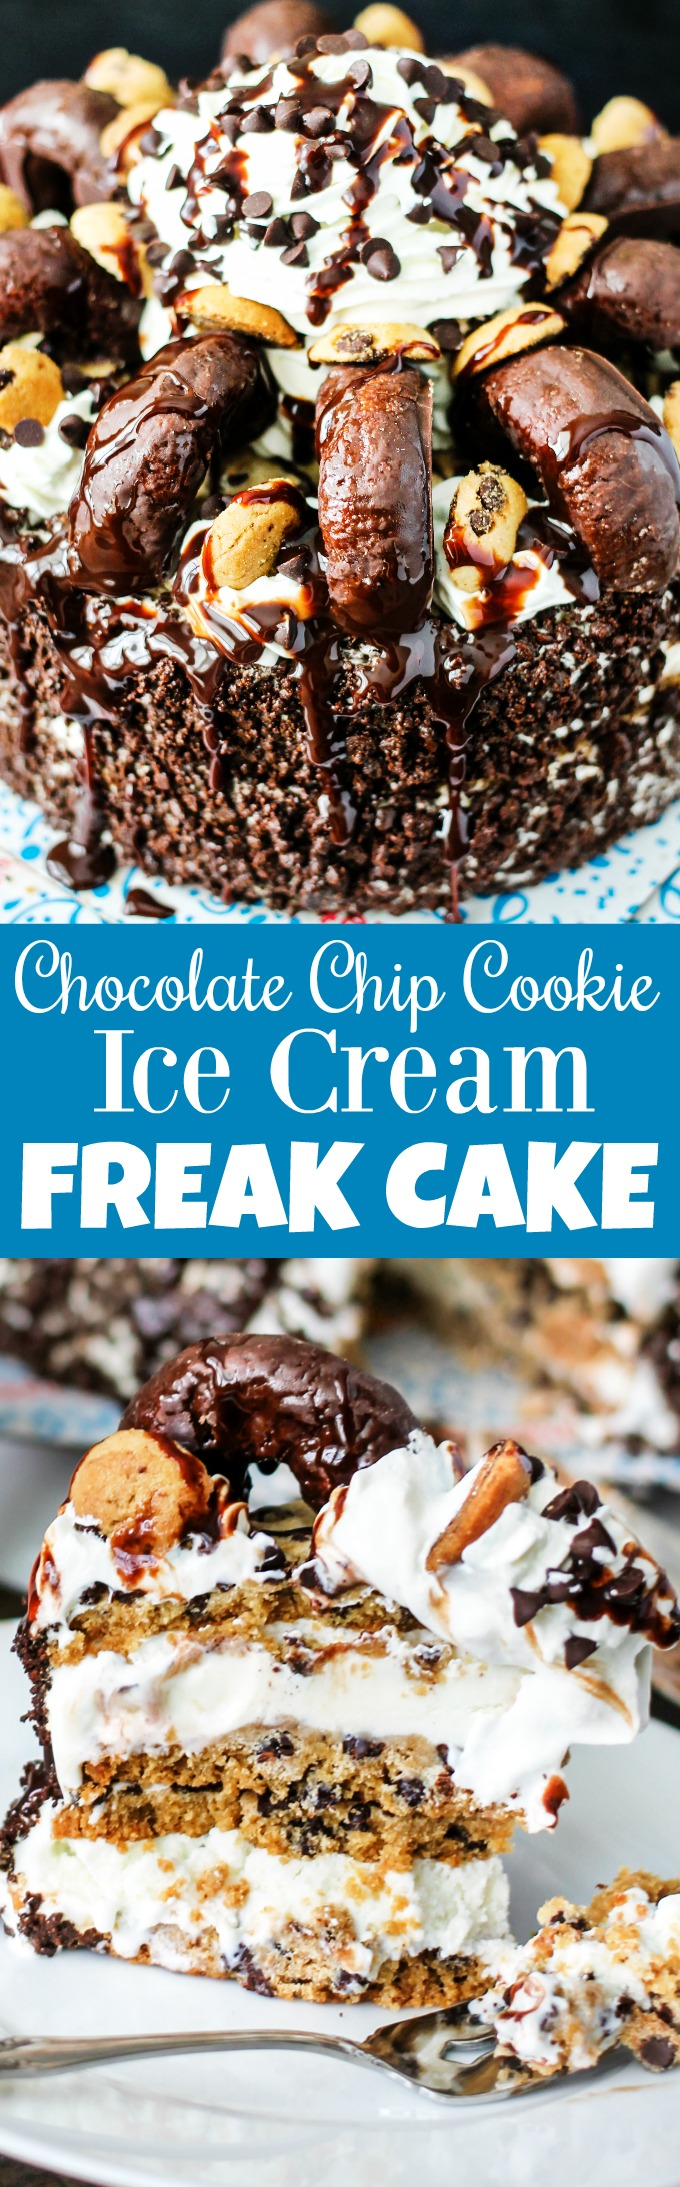 Chocolate Chip Cookie Ice Cream FREAK Cake is the ULTIMATE DESSERT! All of the above plus mini cookies, donuts, chocolate syrup, and whipped cream!